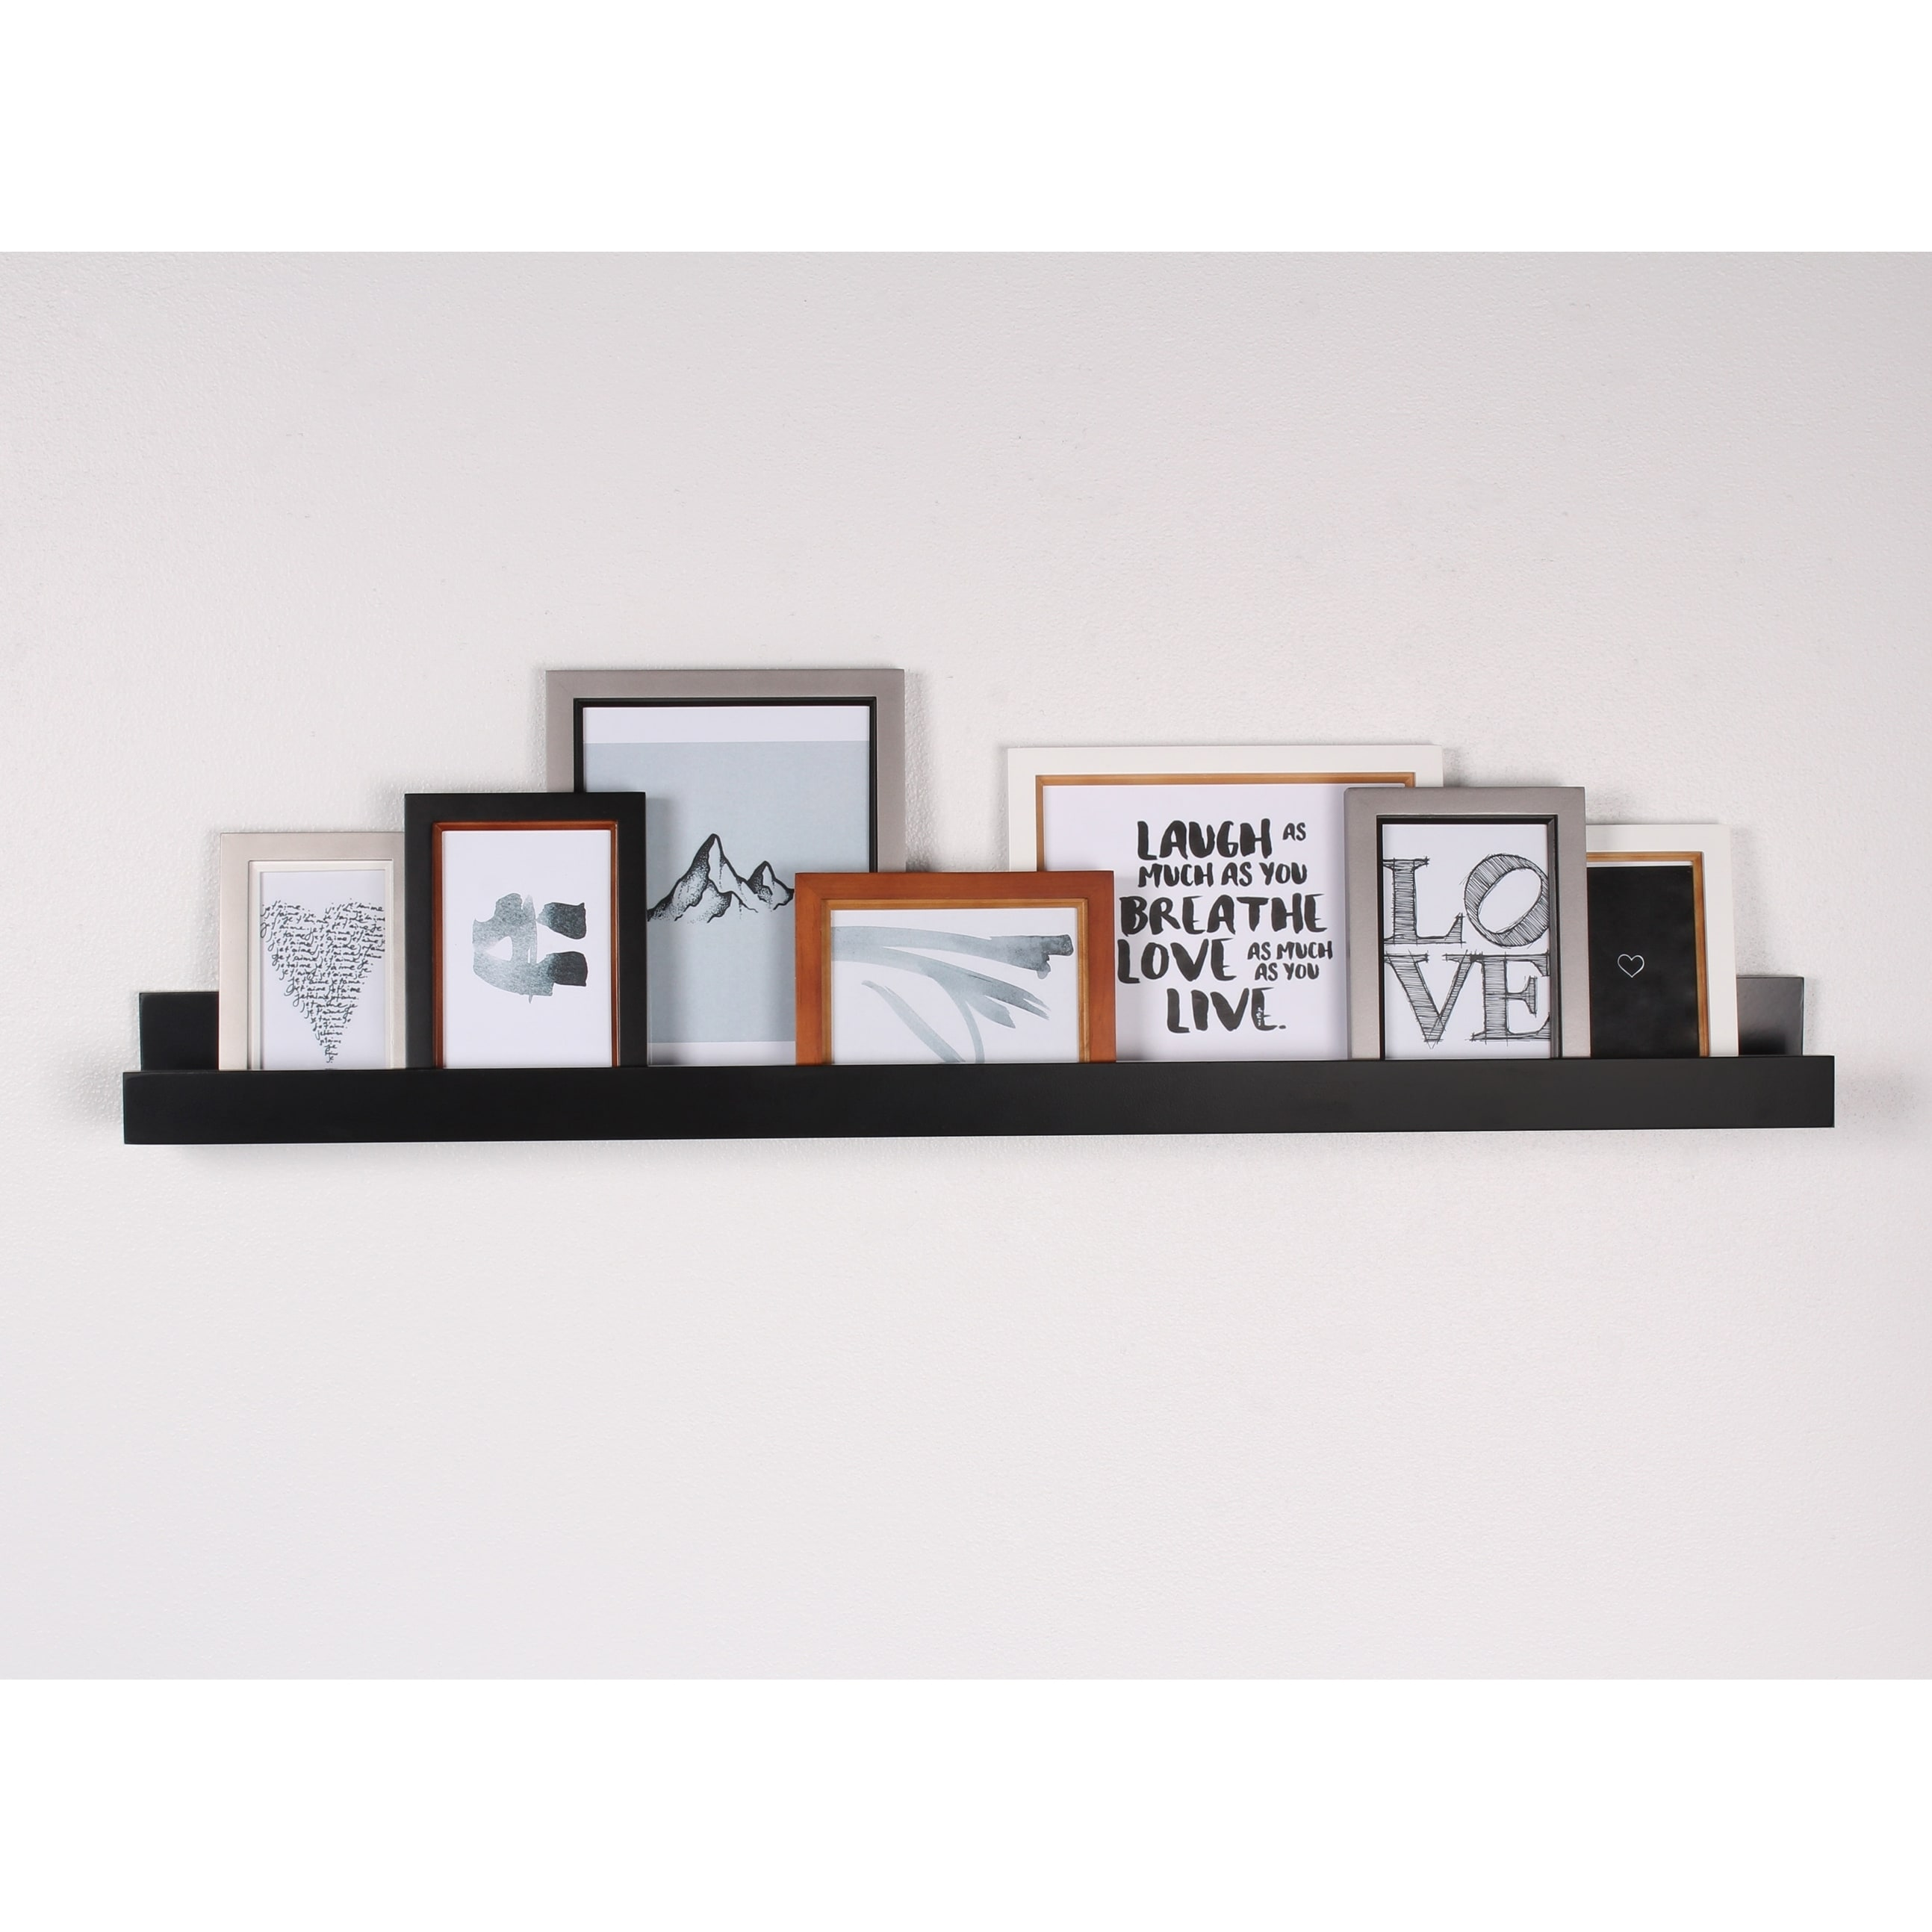 Clay Alder Home Bear Solid Colored Wood Modern Floating Wall Shelf